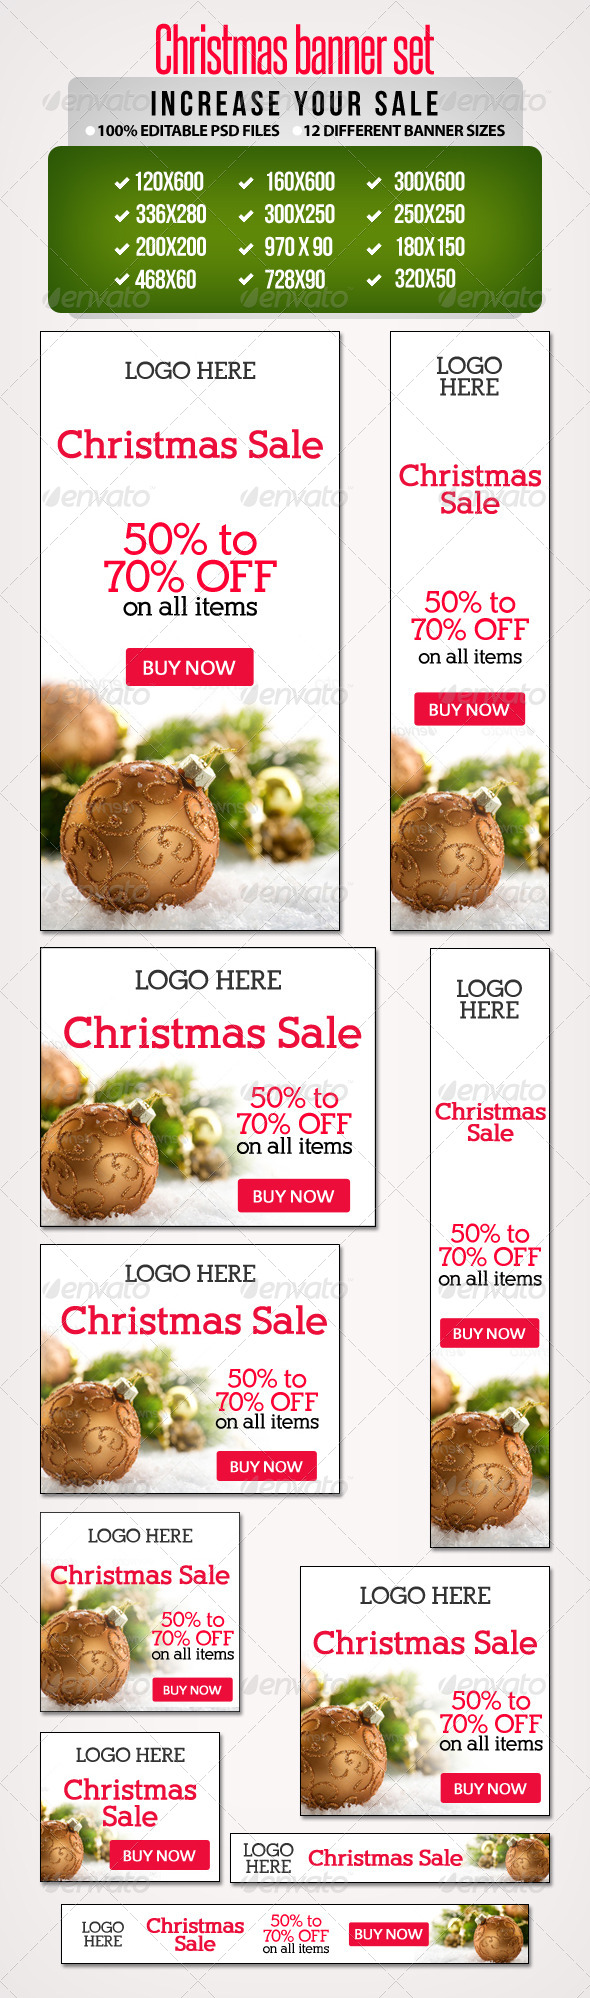 GraphicRiver Christmas Sale Banner Set 1 12 Sizes 6322755